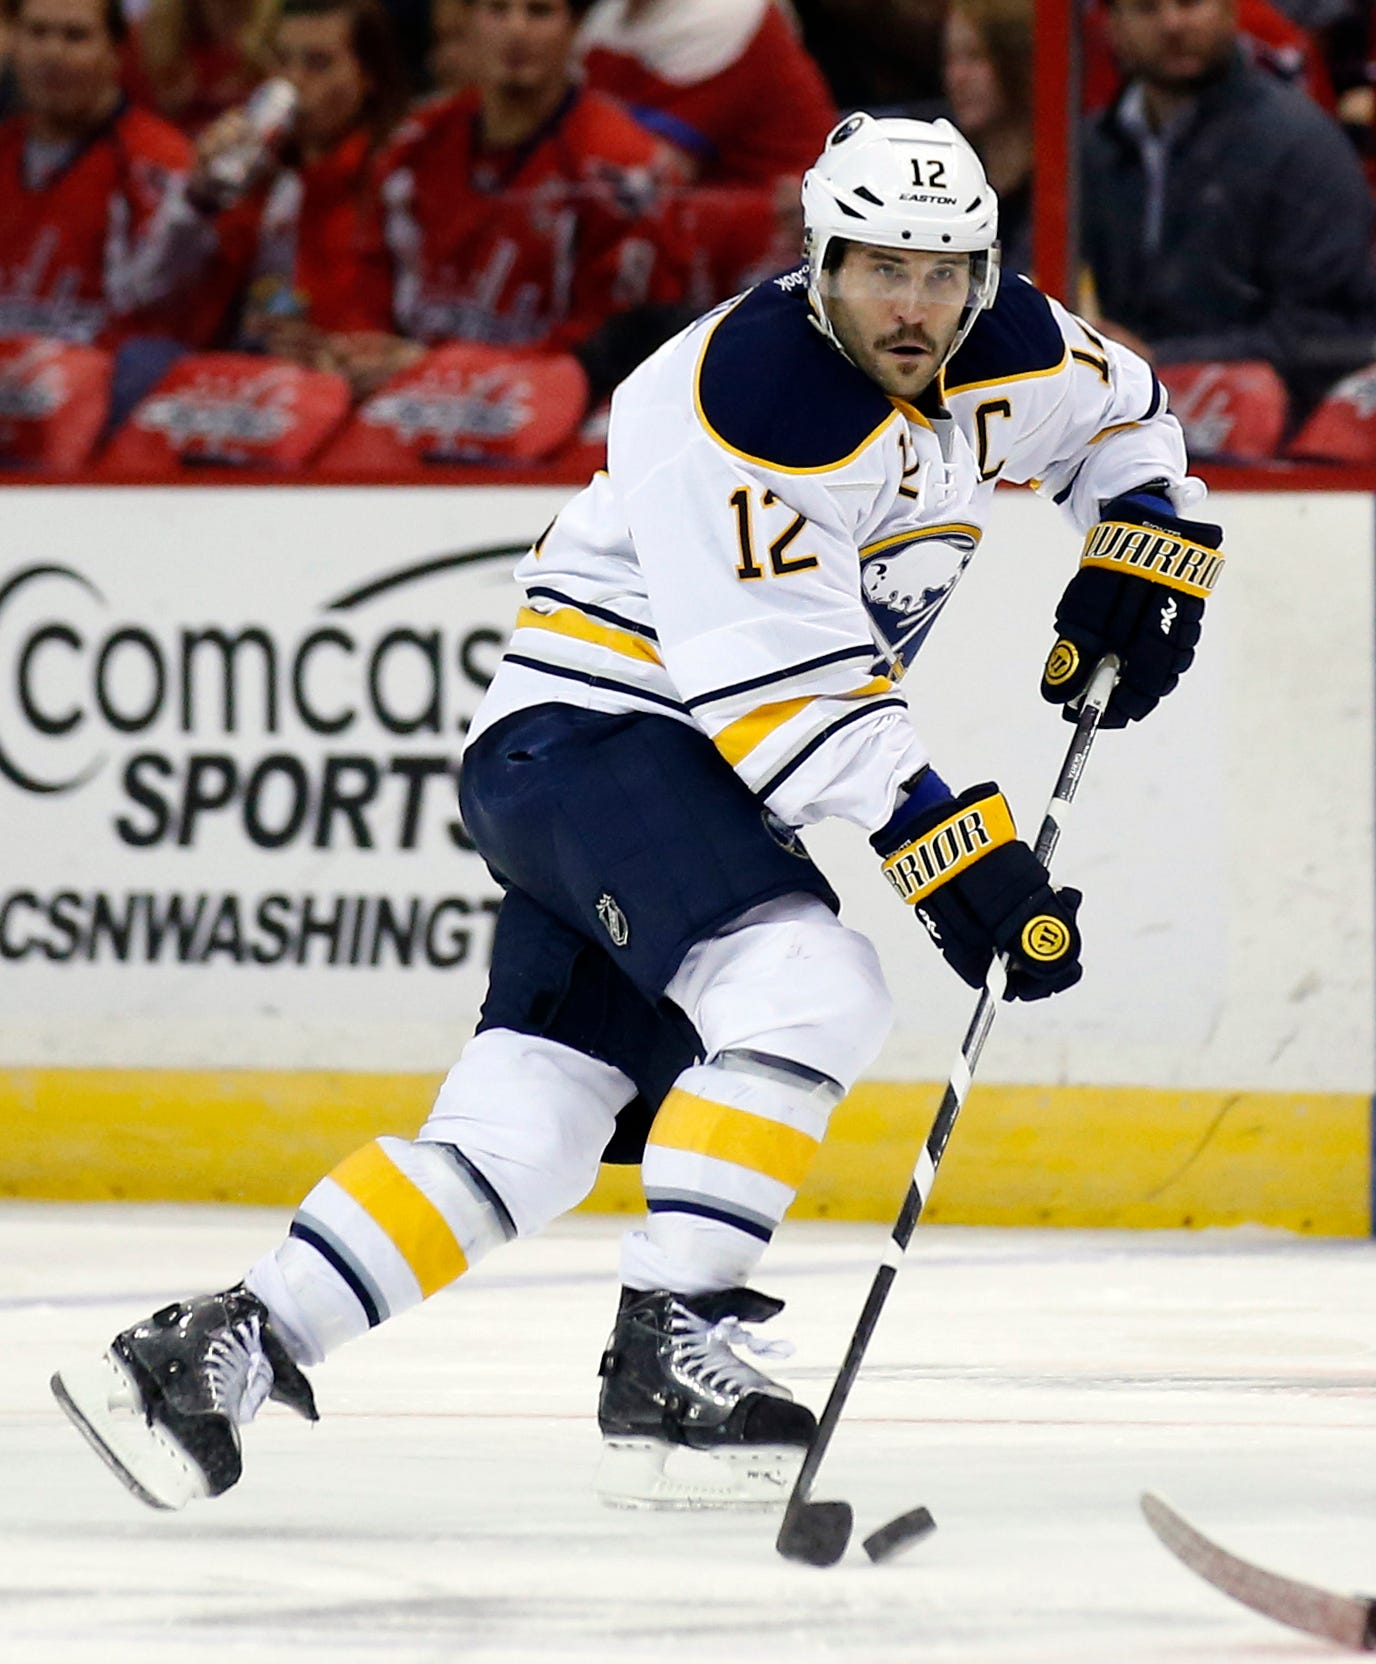 Ex-Sabres captain Brian Gionta retires after 16 NHL seasons